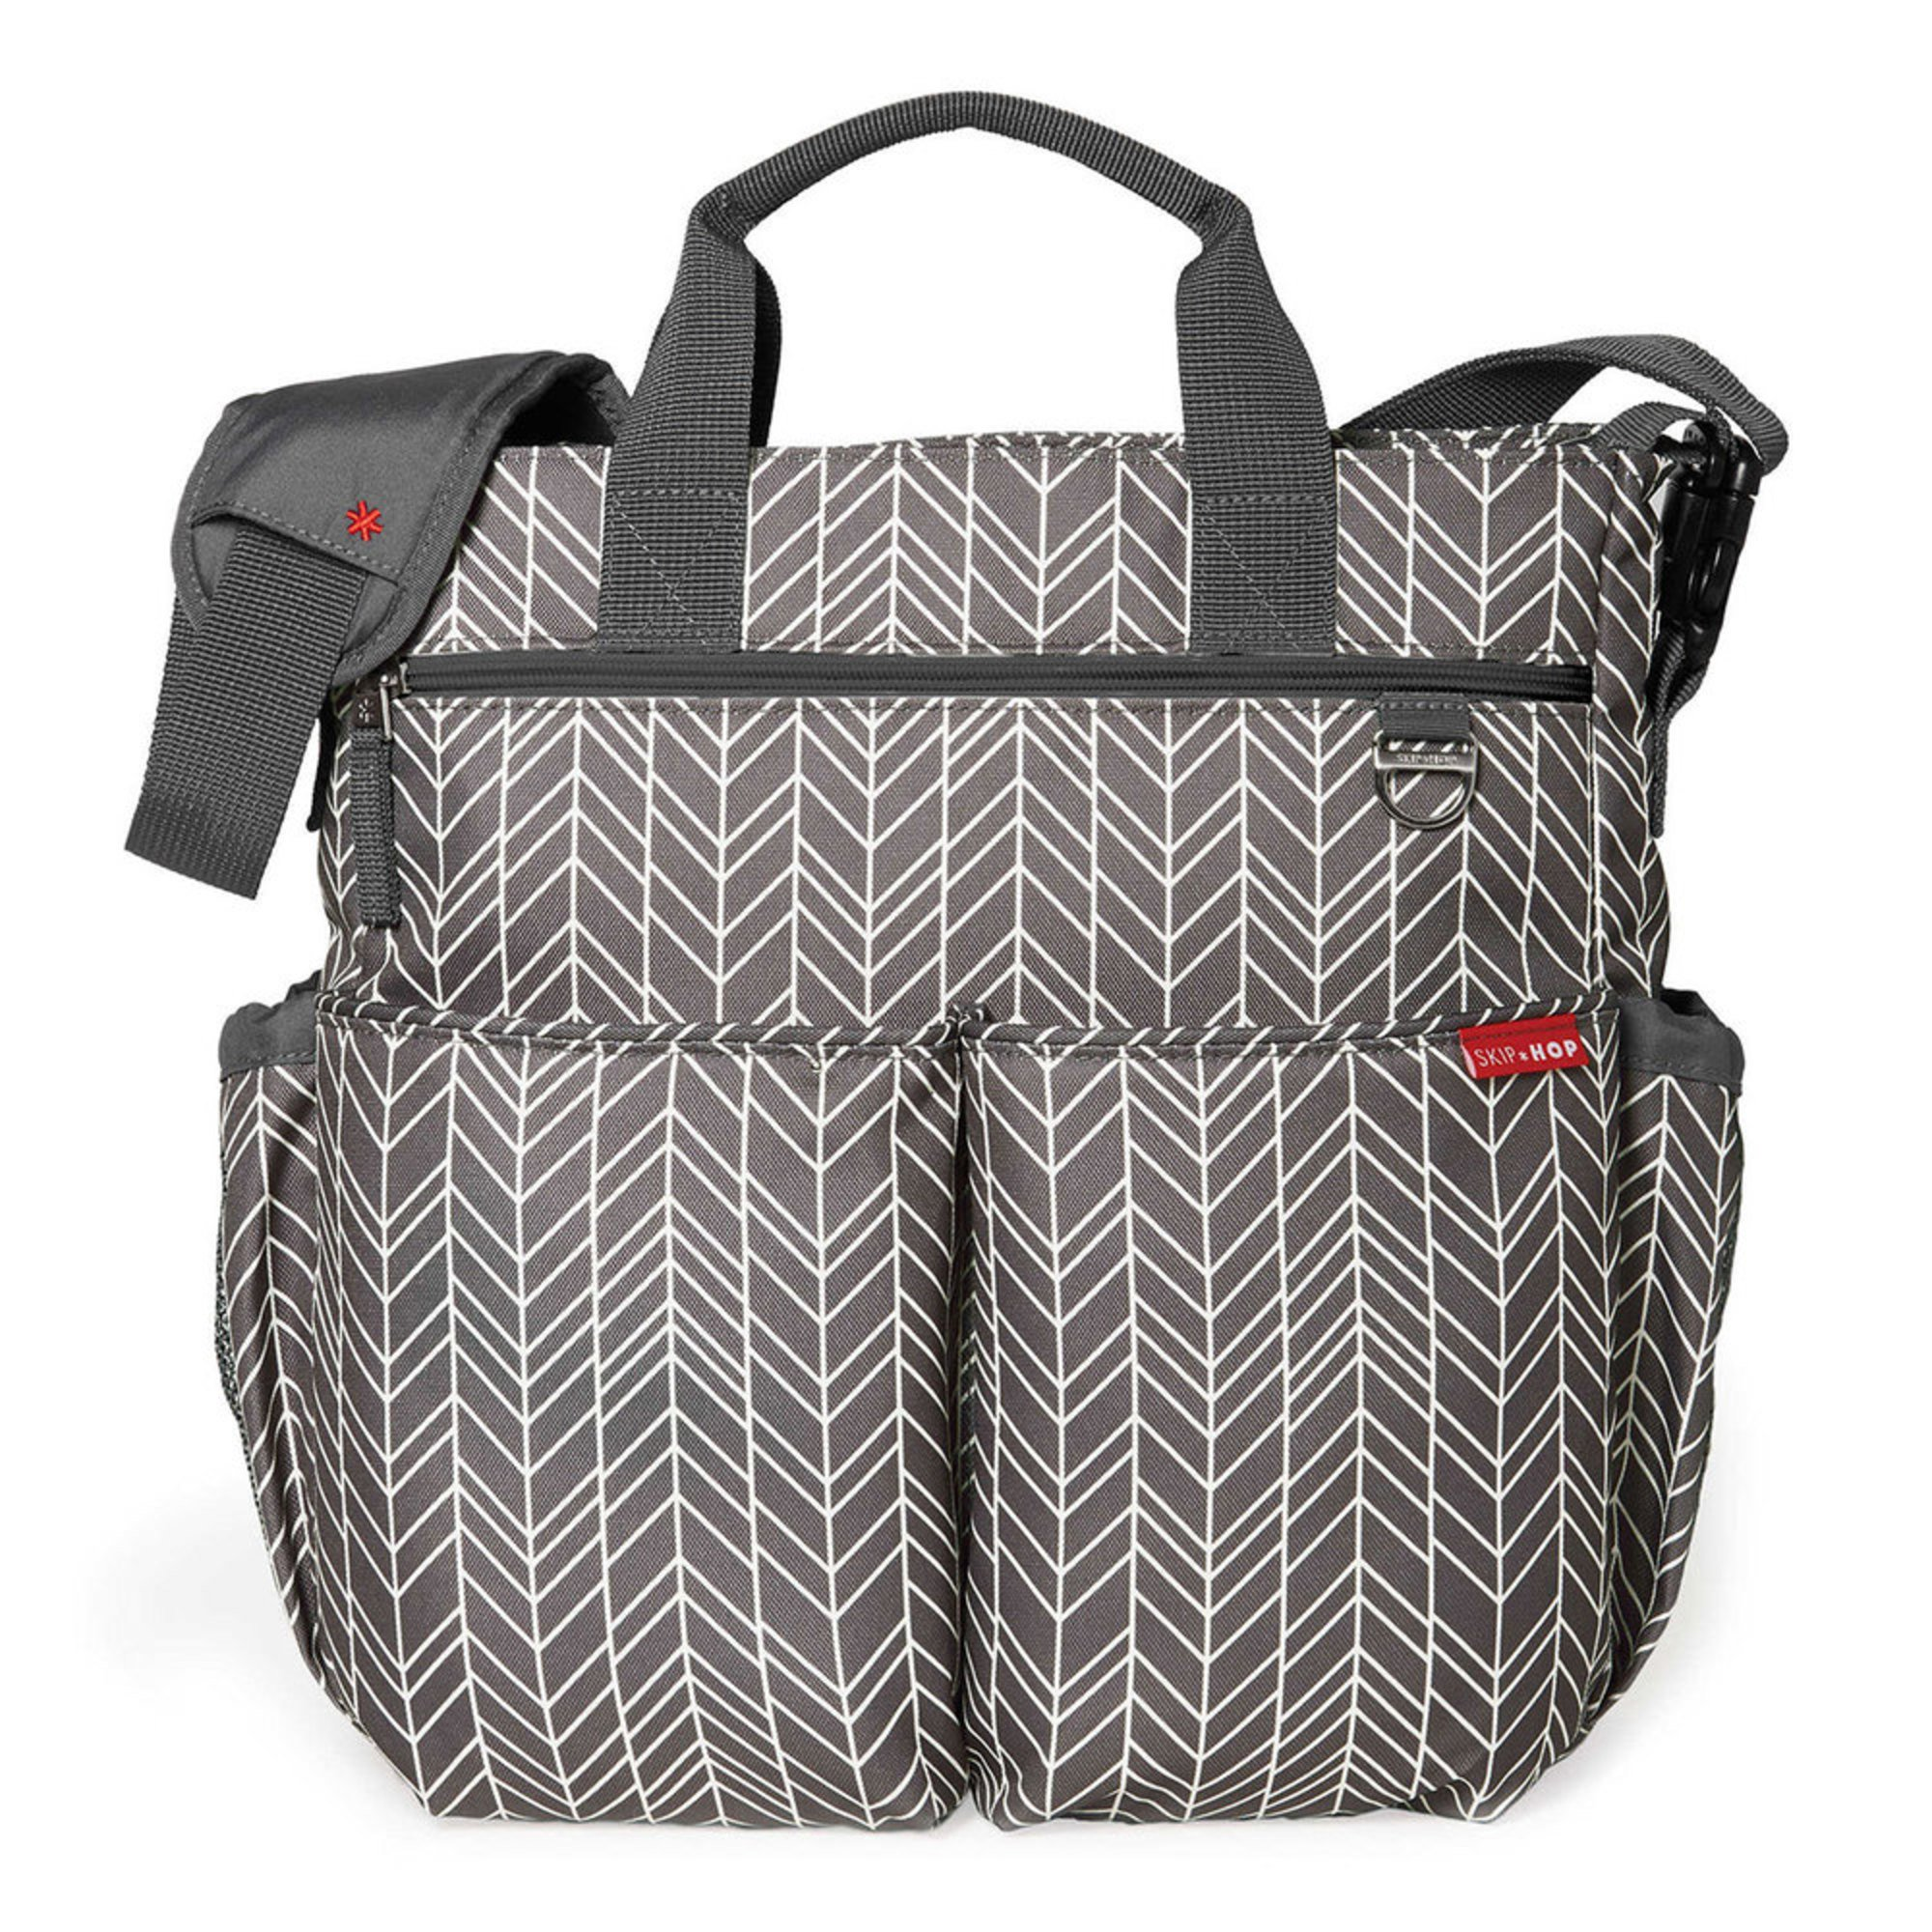 43164a0018143 Skip Hop Duo Signature Diaper Bag, Grey Feather | Totes | Baby, Kids ...